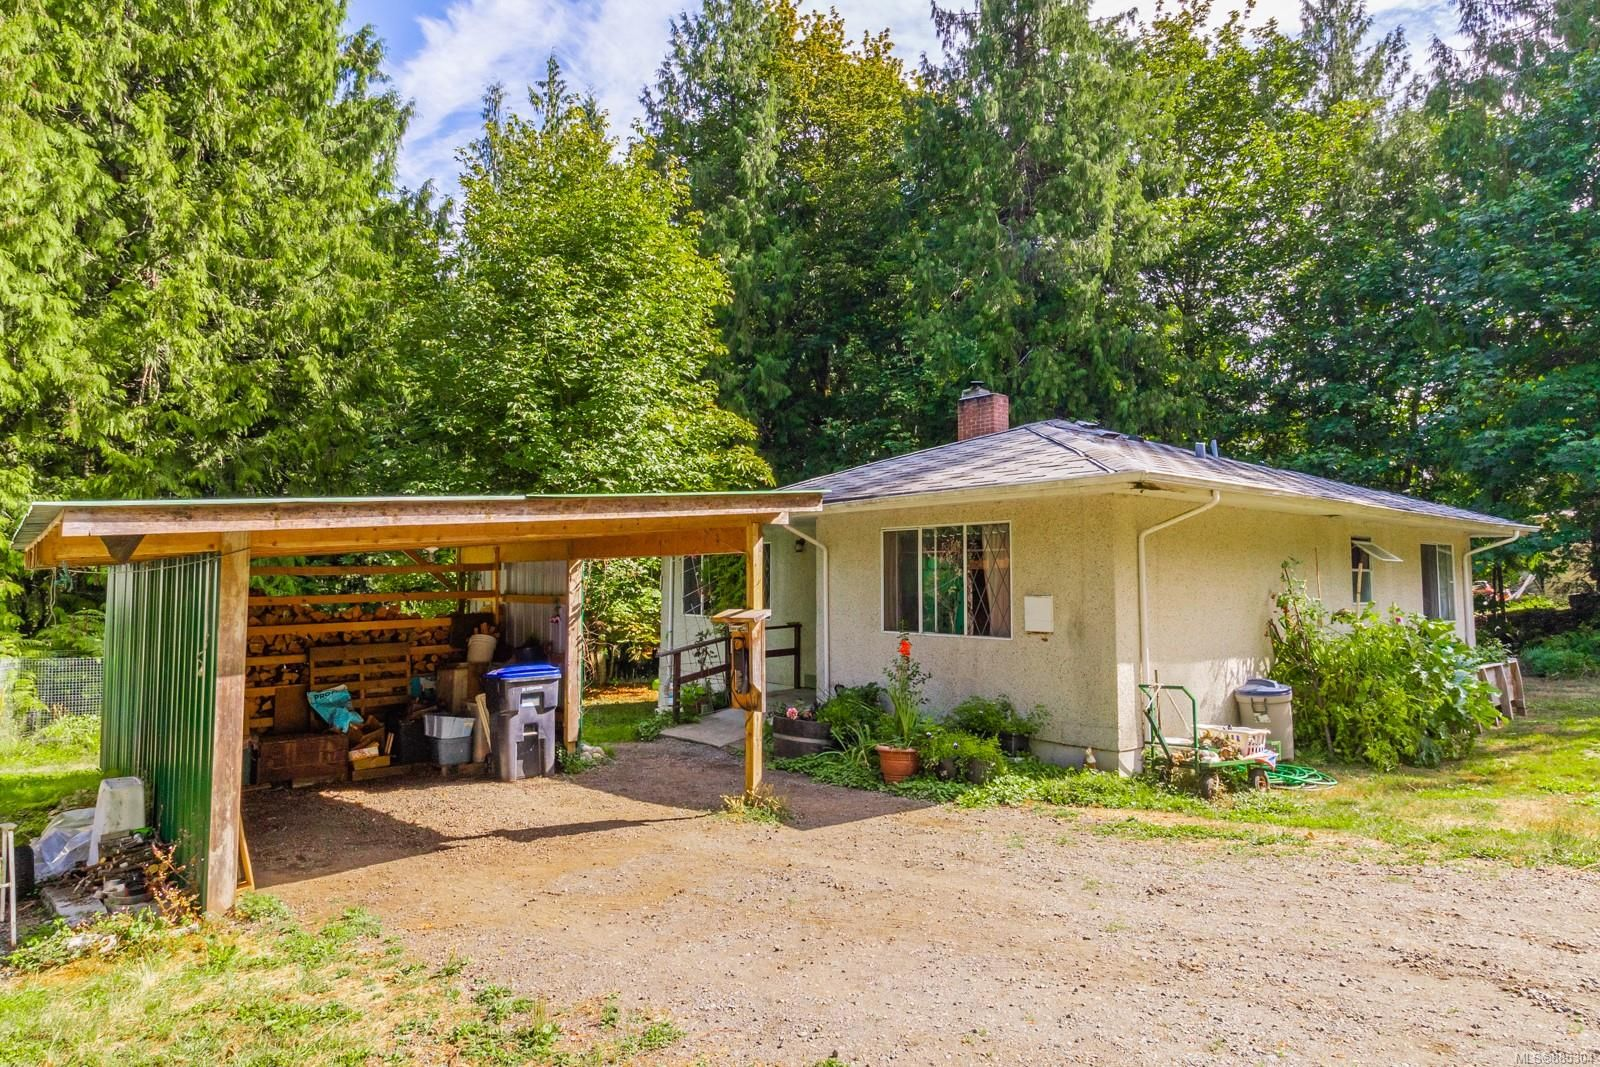 Main Photo: 3061 Rinvold Rd in : PQ Errington/Coombs/Hilliers House for sale (Parksville/Qualicum)  : MLS®# 885304